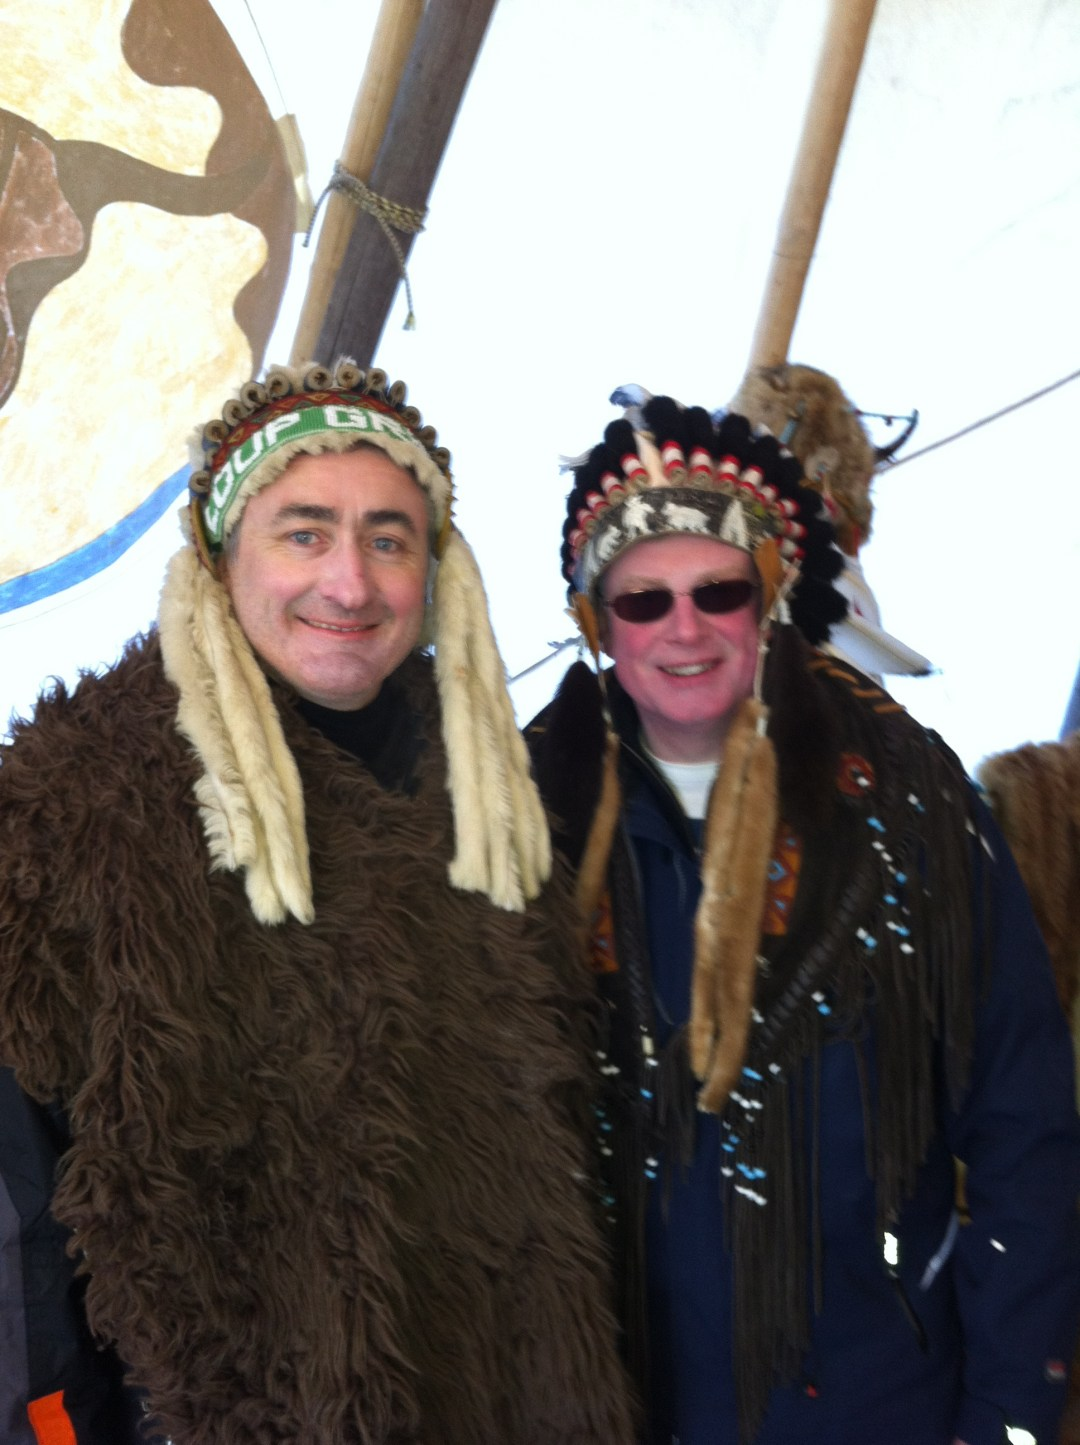 My New Year clients enjoying the Indians run in Courchevel 1650!